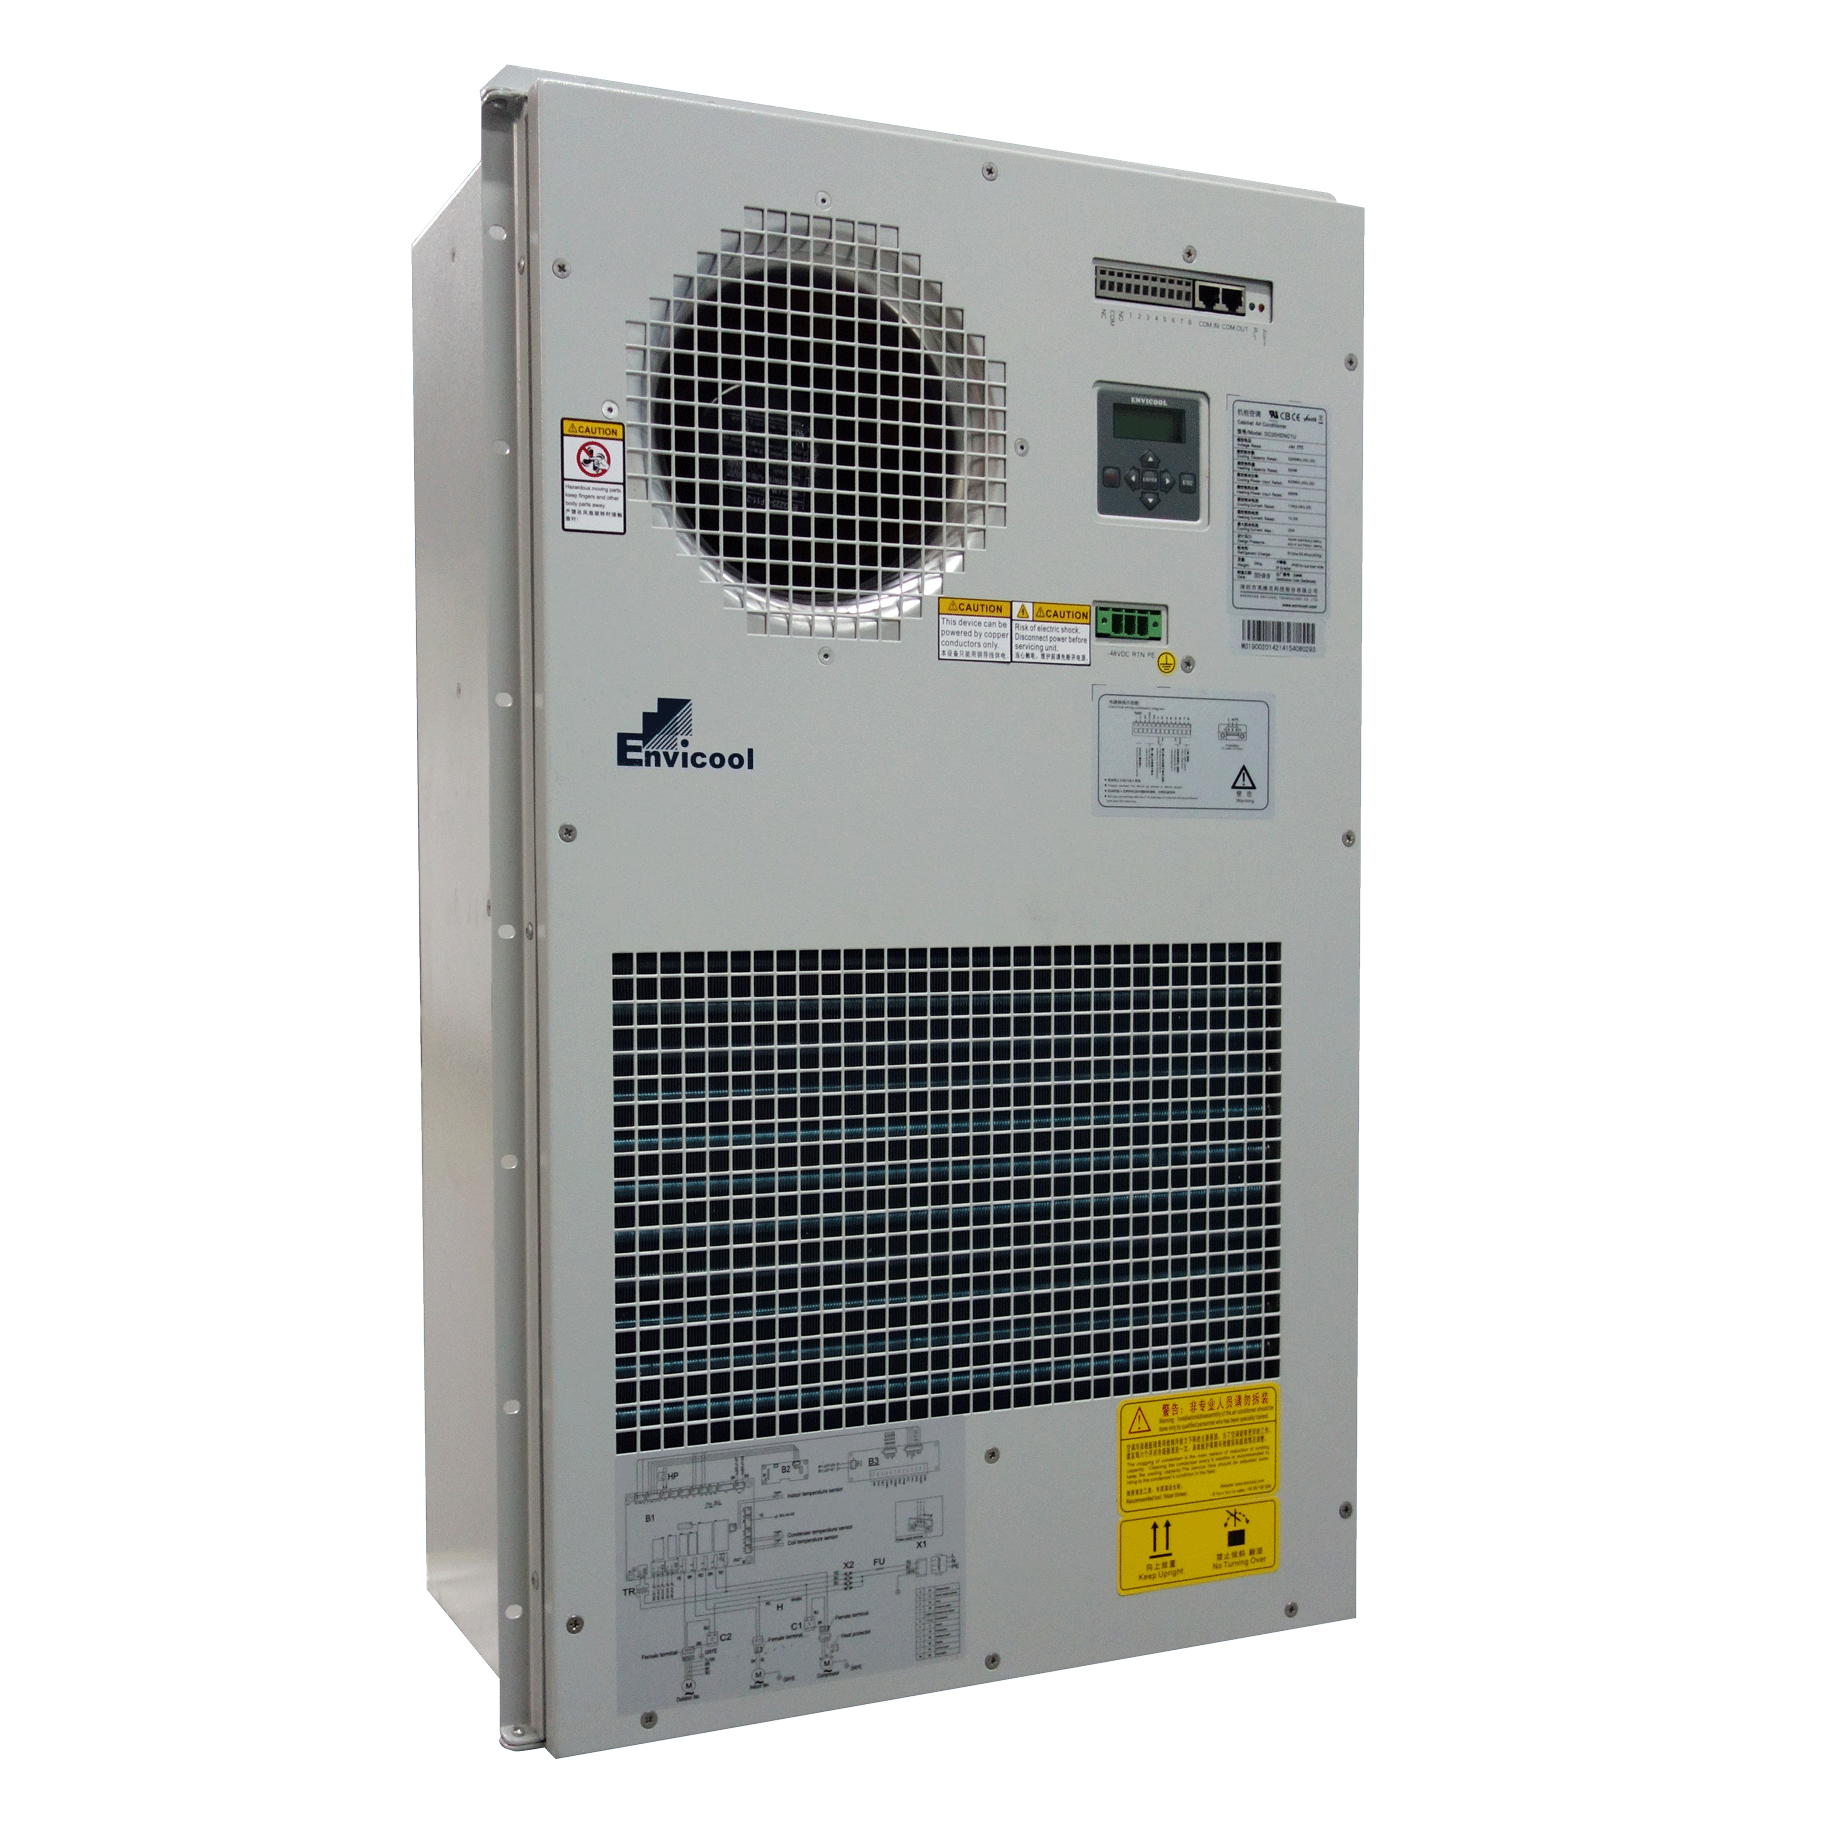 DC AIRCON FOR TELECOM Featured Image